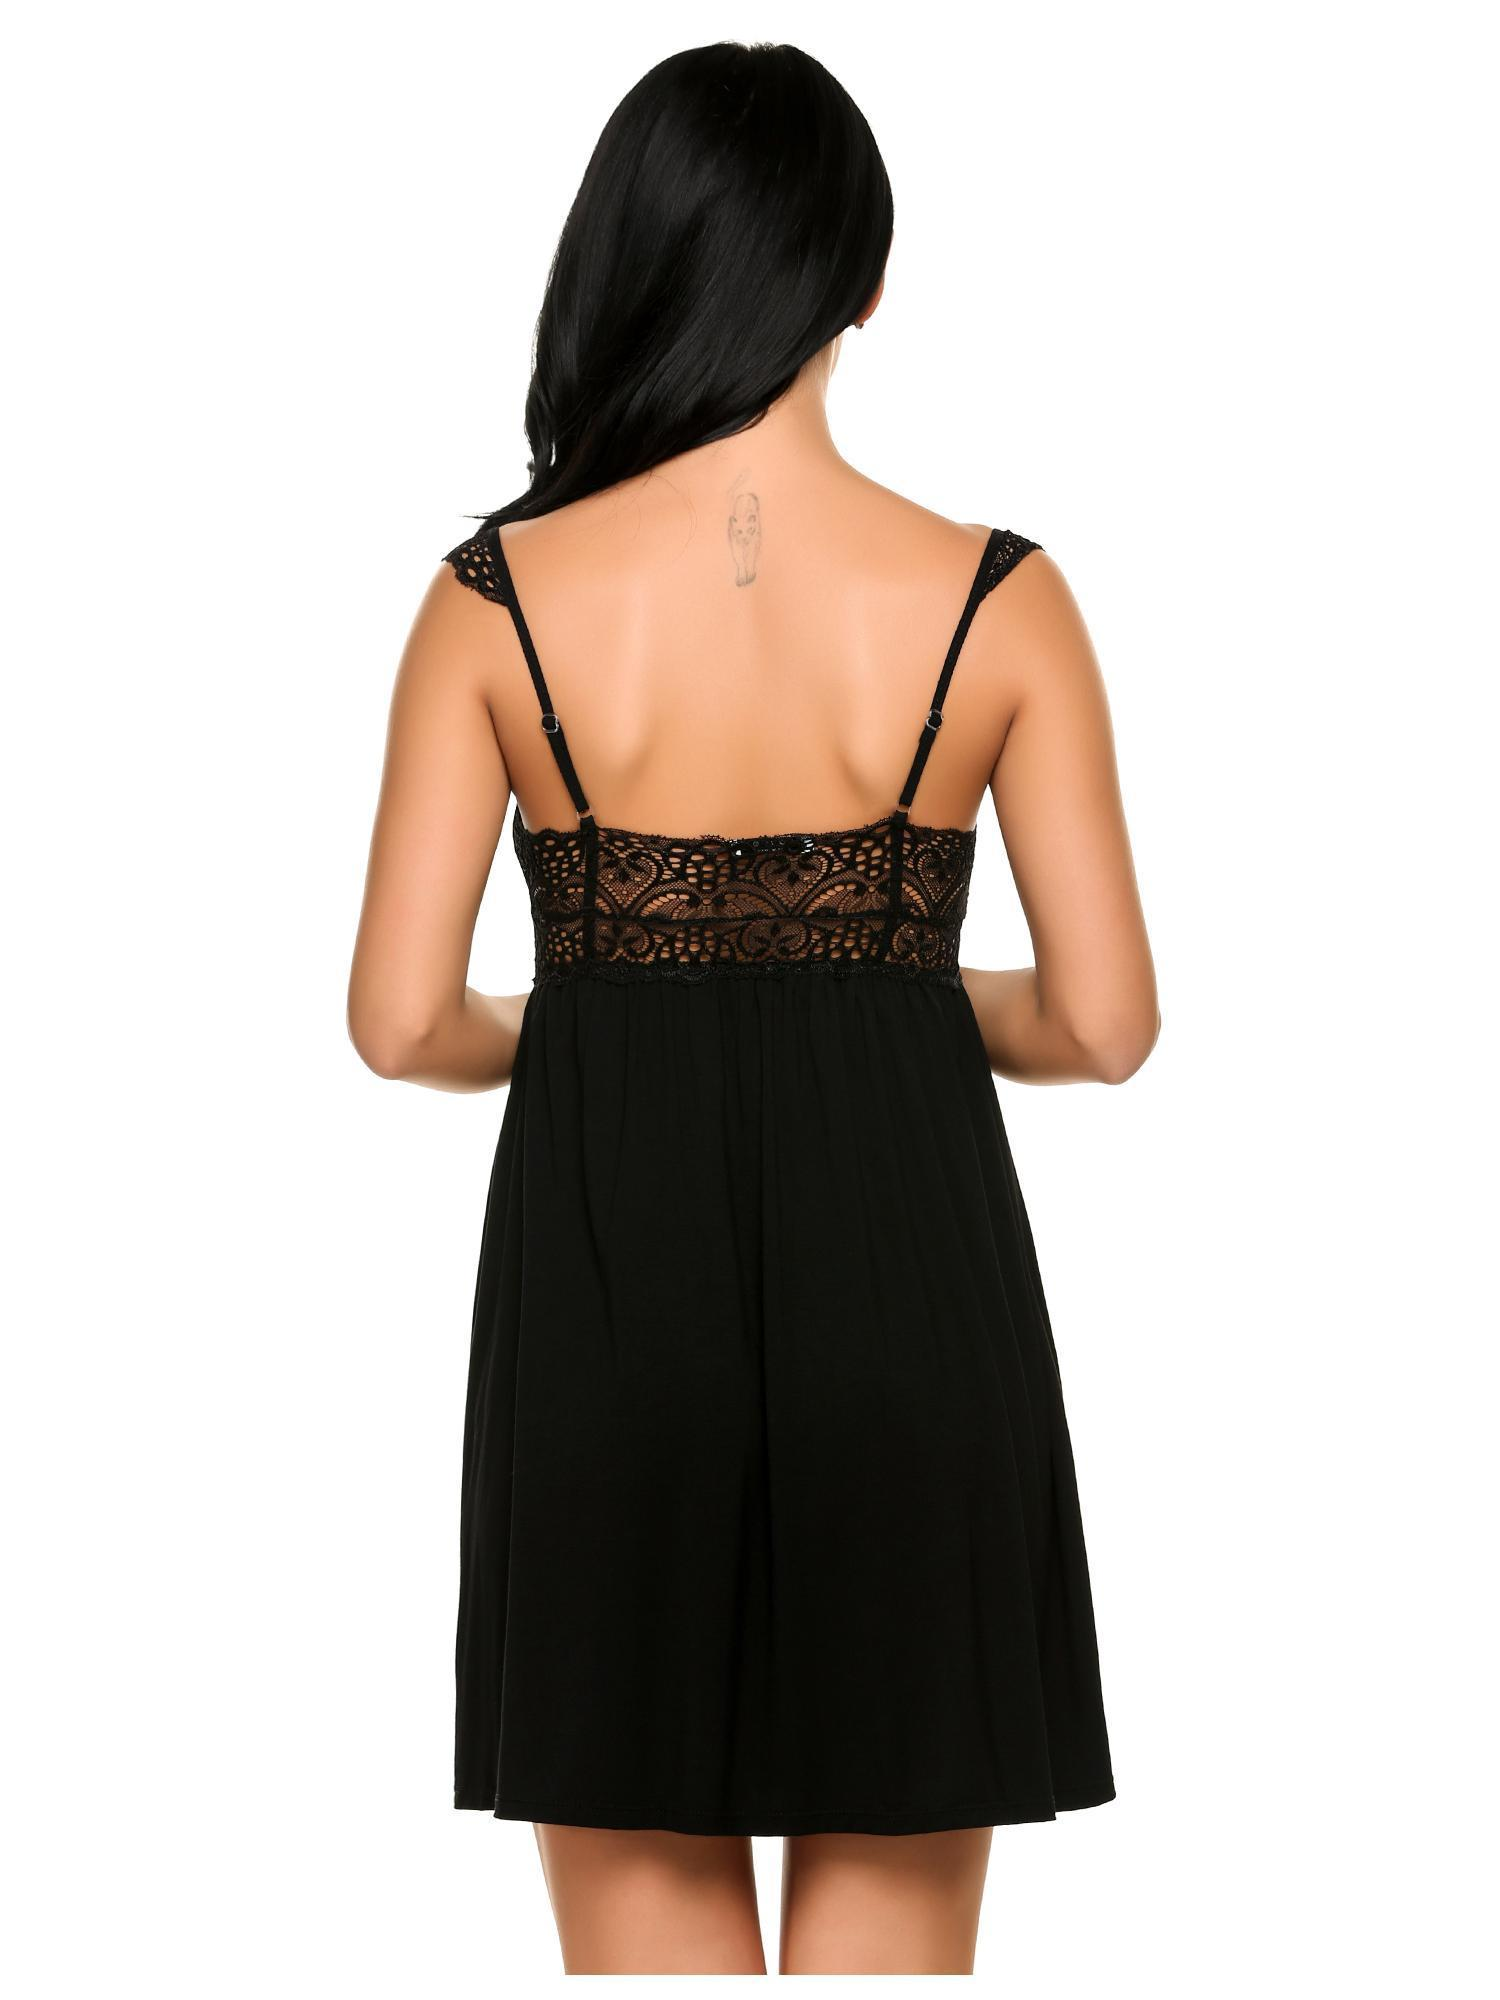 853f97eb10 Women Sleepwear Soft V-Neck Lace Slip Nightgowns Sexy Sling Dress -  Walmart.com